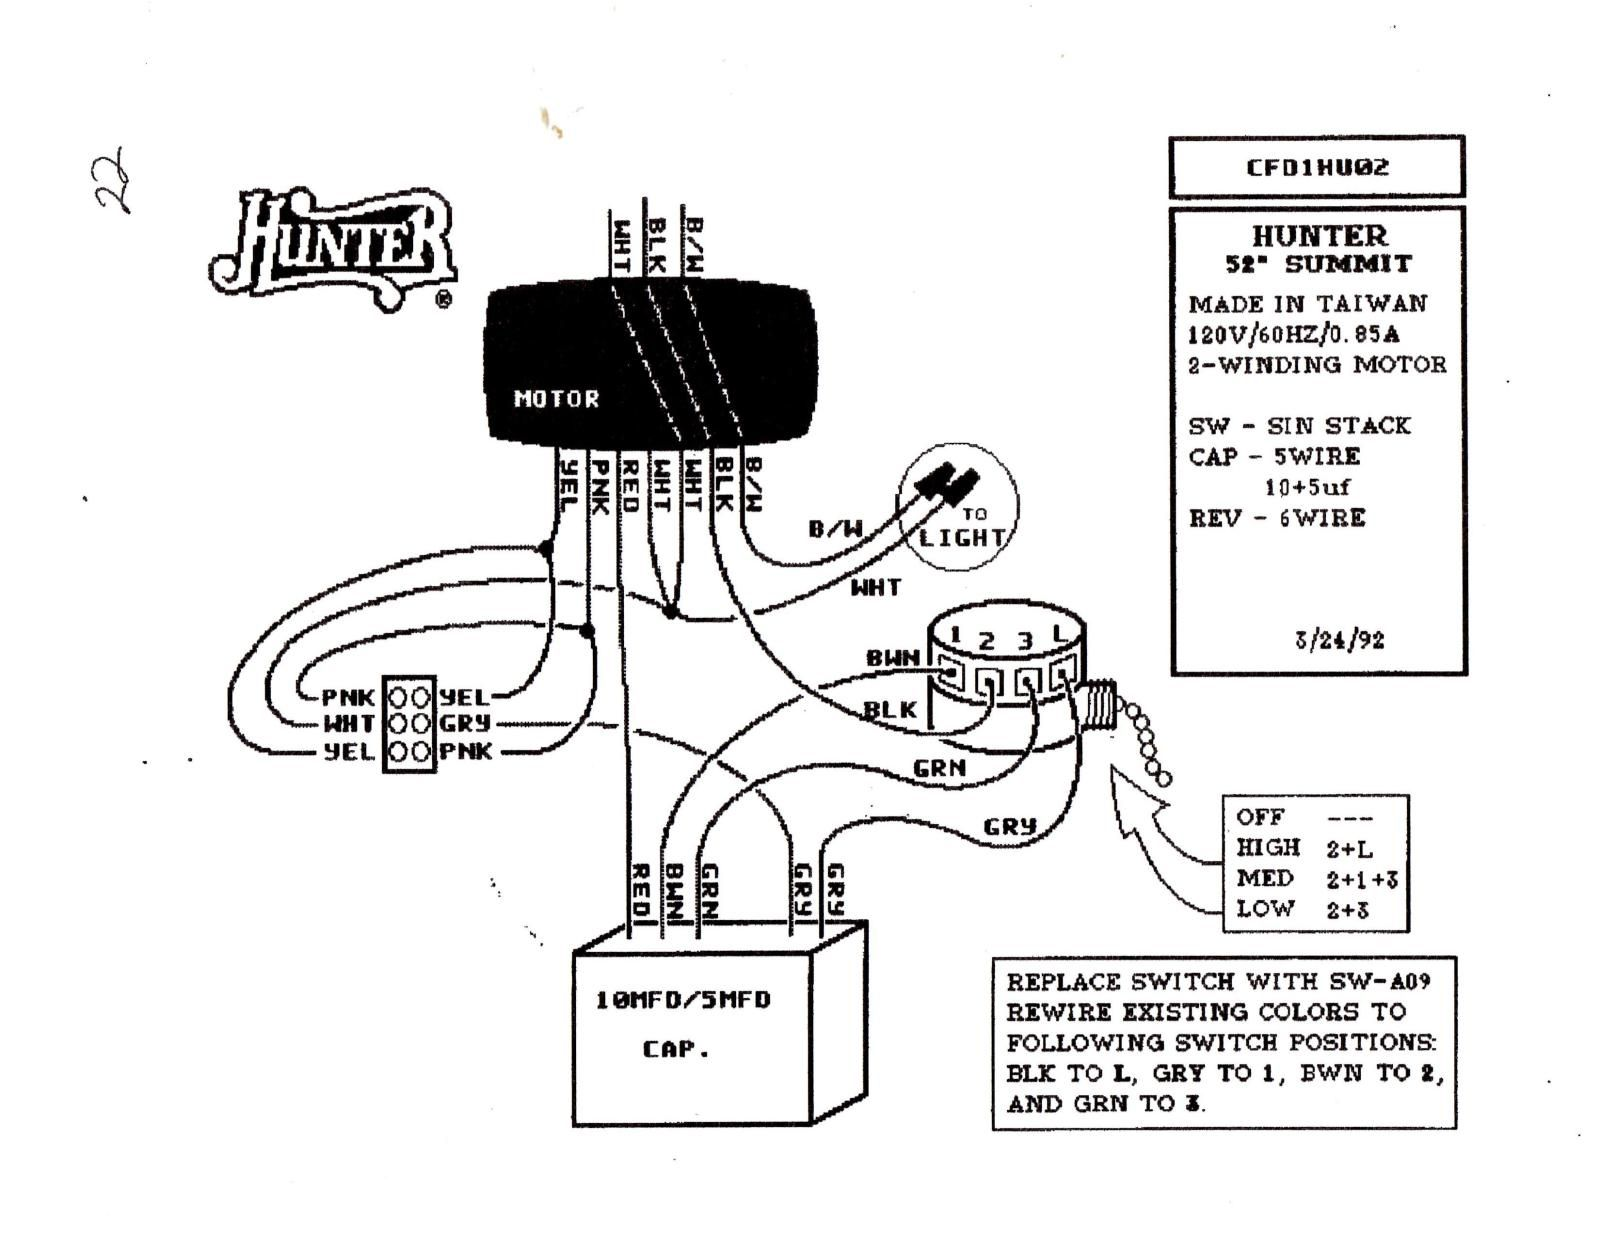 Hunter Ceiling Fan Sd Switch Wiring Diagram | Switch | Ceiling ... on craftmade ceiling fan wiring schematic, hampton bay ceiling fan parts list, hunter ceiling fan wiring schematic, emerson ceiling fan wiring schematic,